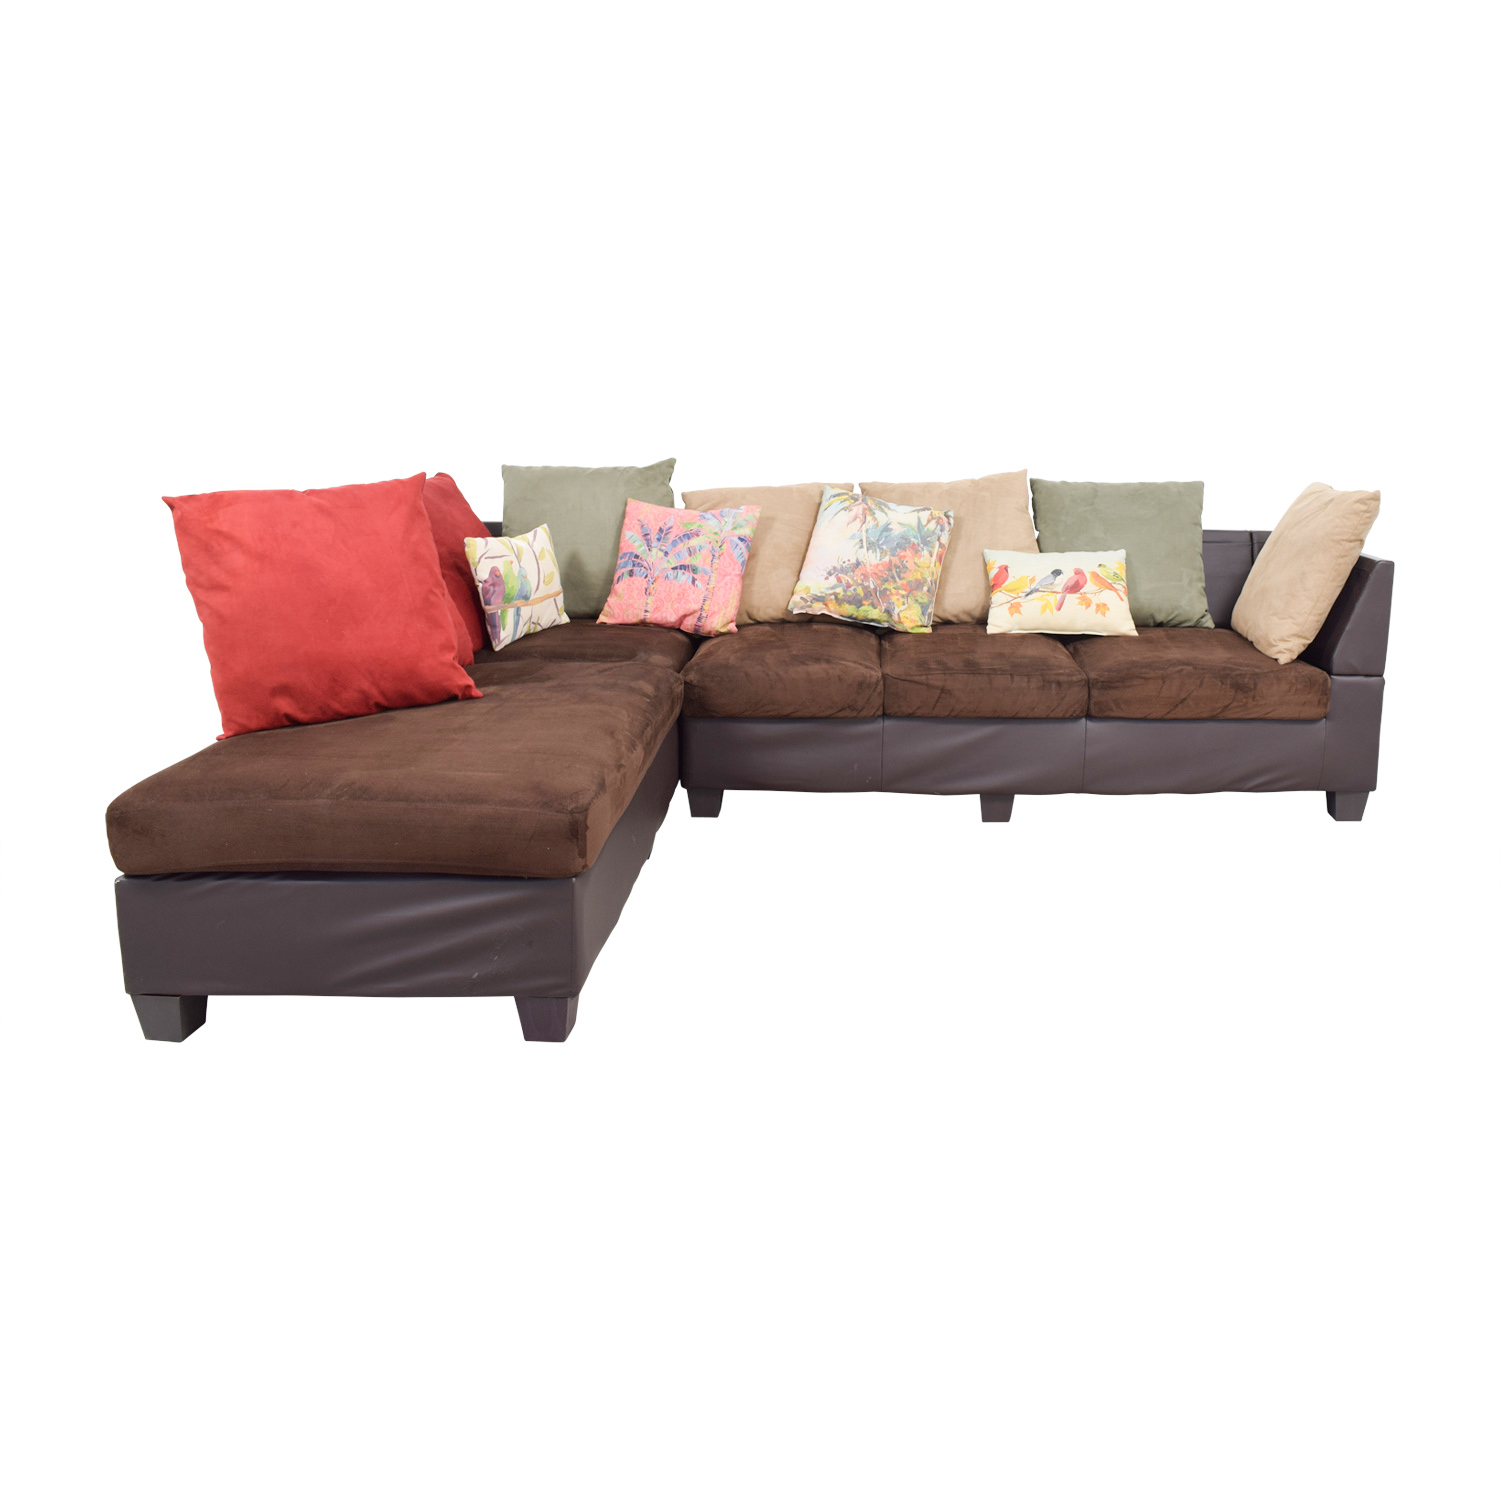 buy Downtown Furniture Brown Multi-Fabric L-Shapes Sectional with Toss Pillows Downtown Furniture